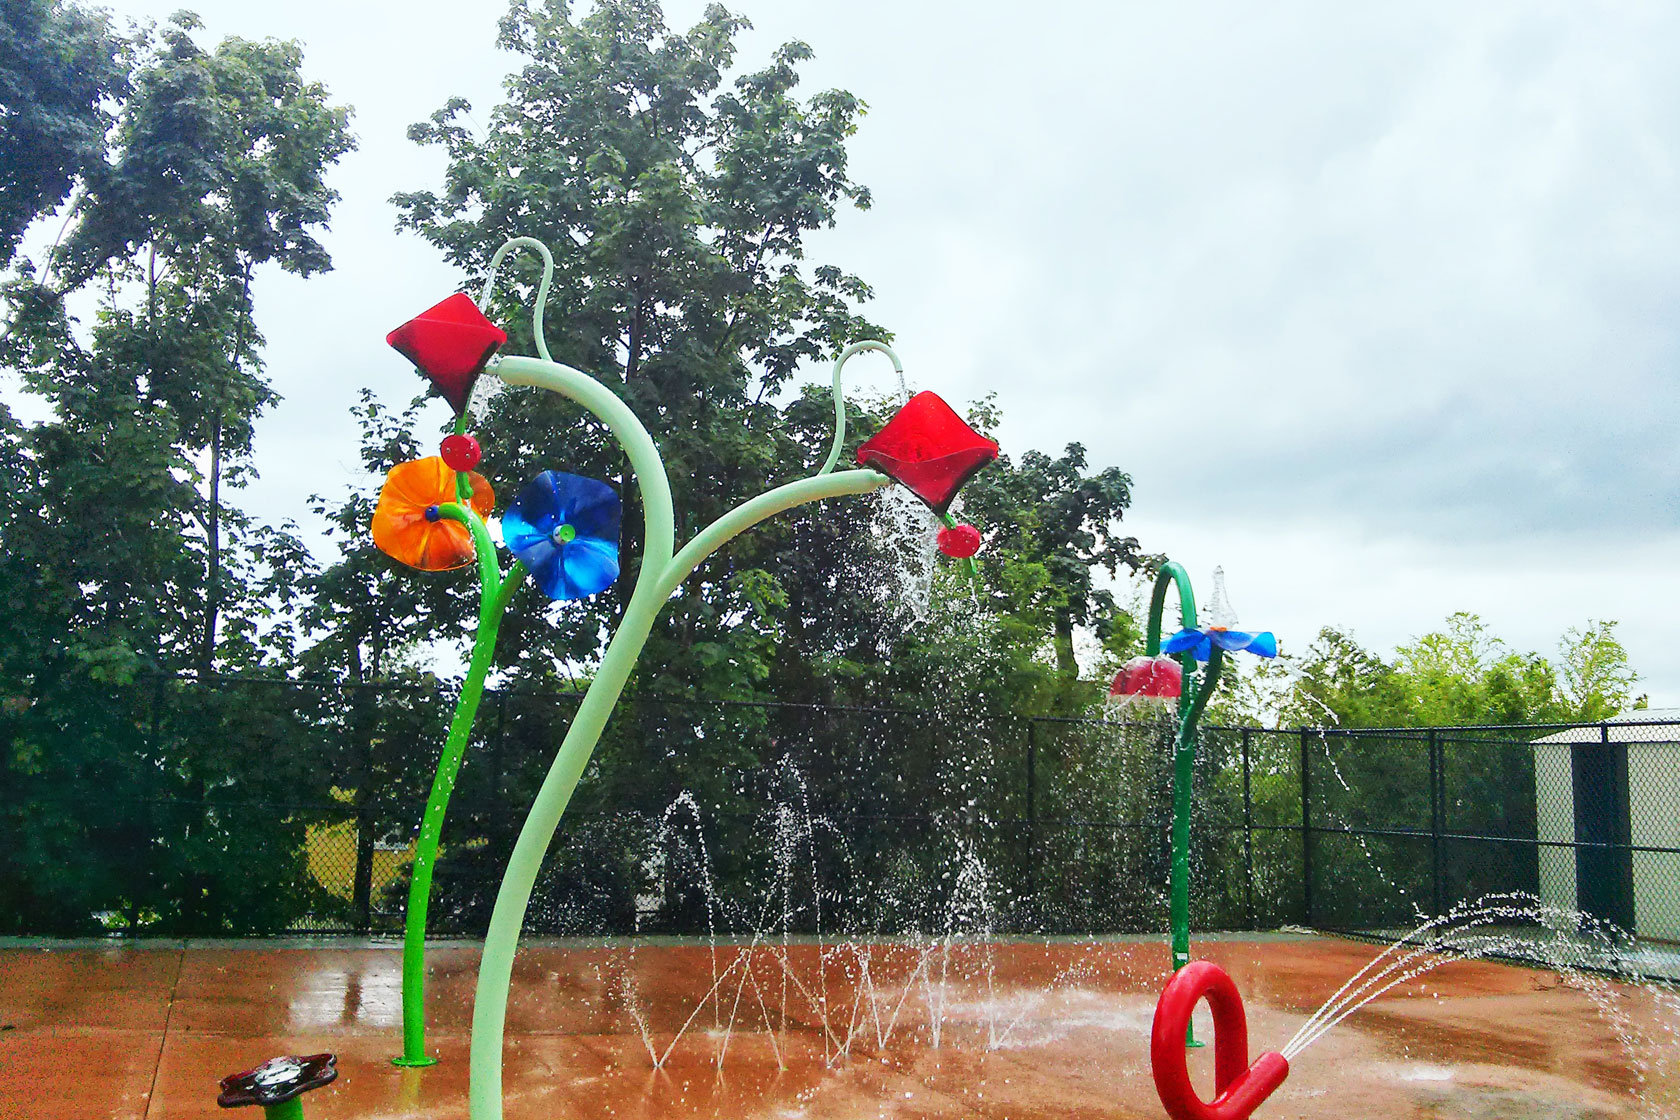 The 1805 square foot columbus spray park is made up of two pods that together have three zones individually designed for families teens and toddlers